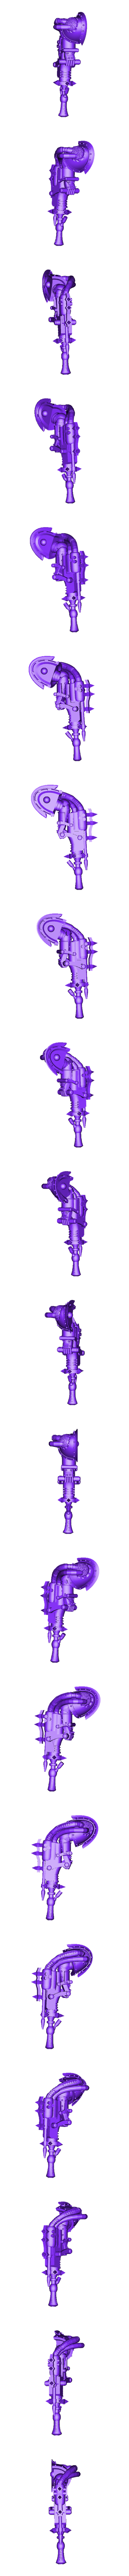 Plague_Marines_Arm_R_Plague_Spewer_fixed.stl Download free STL file Parts of a Disgusting Resilient Marine Builder • 3D printable design, Sumbu